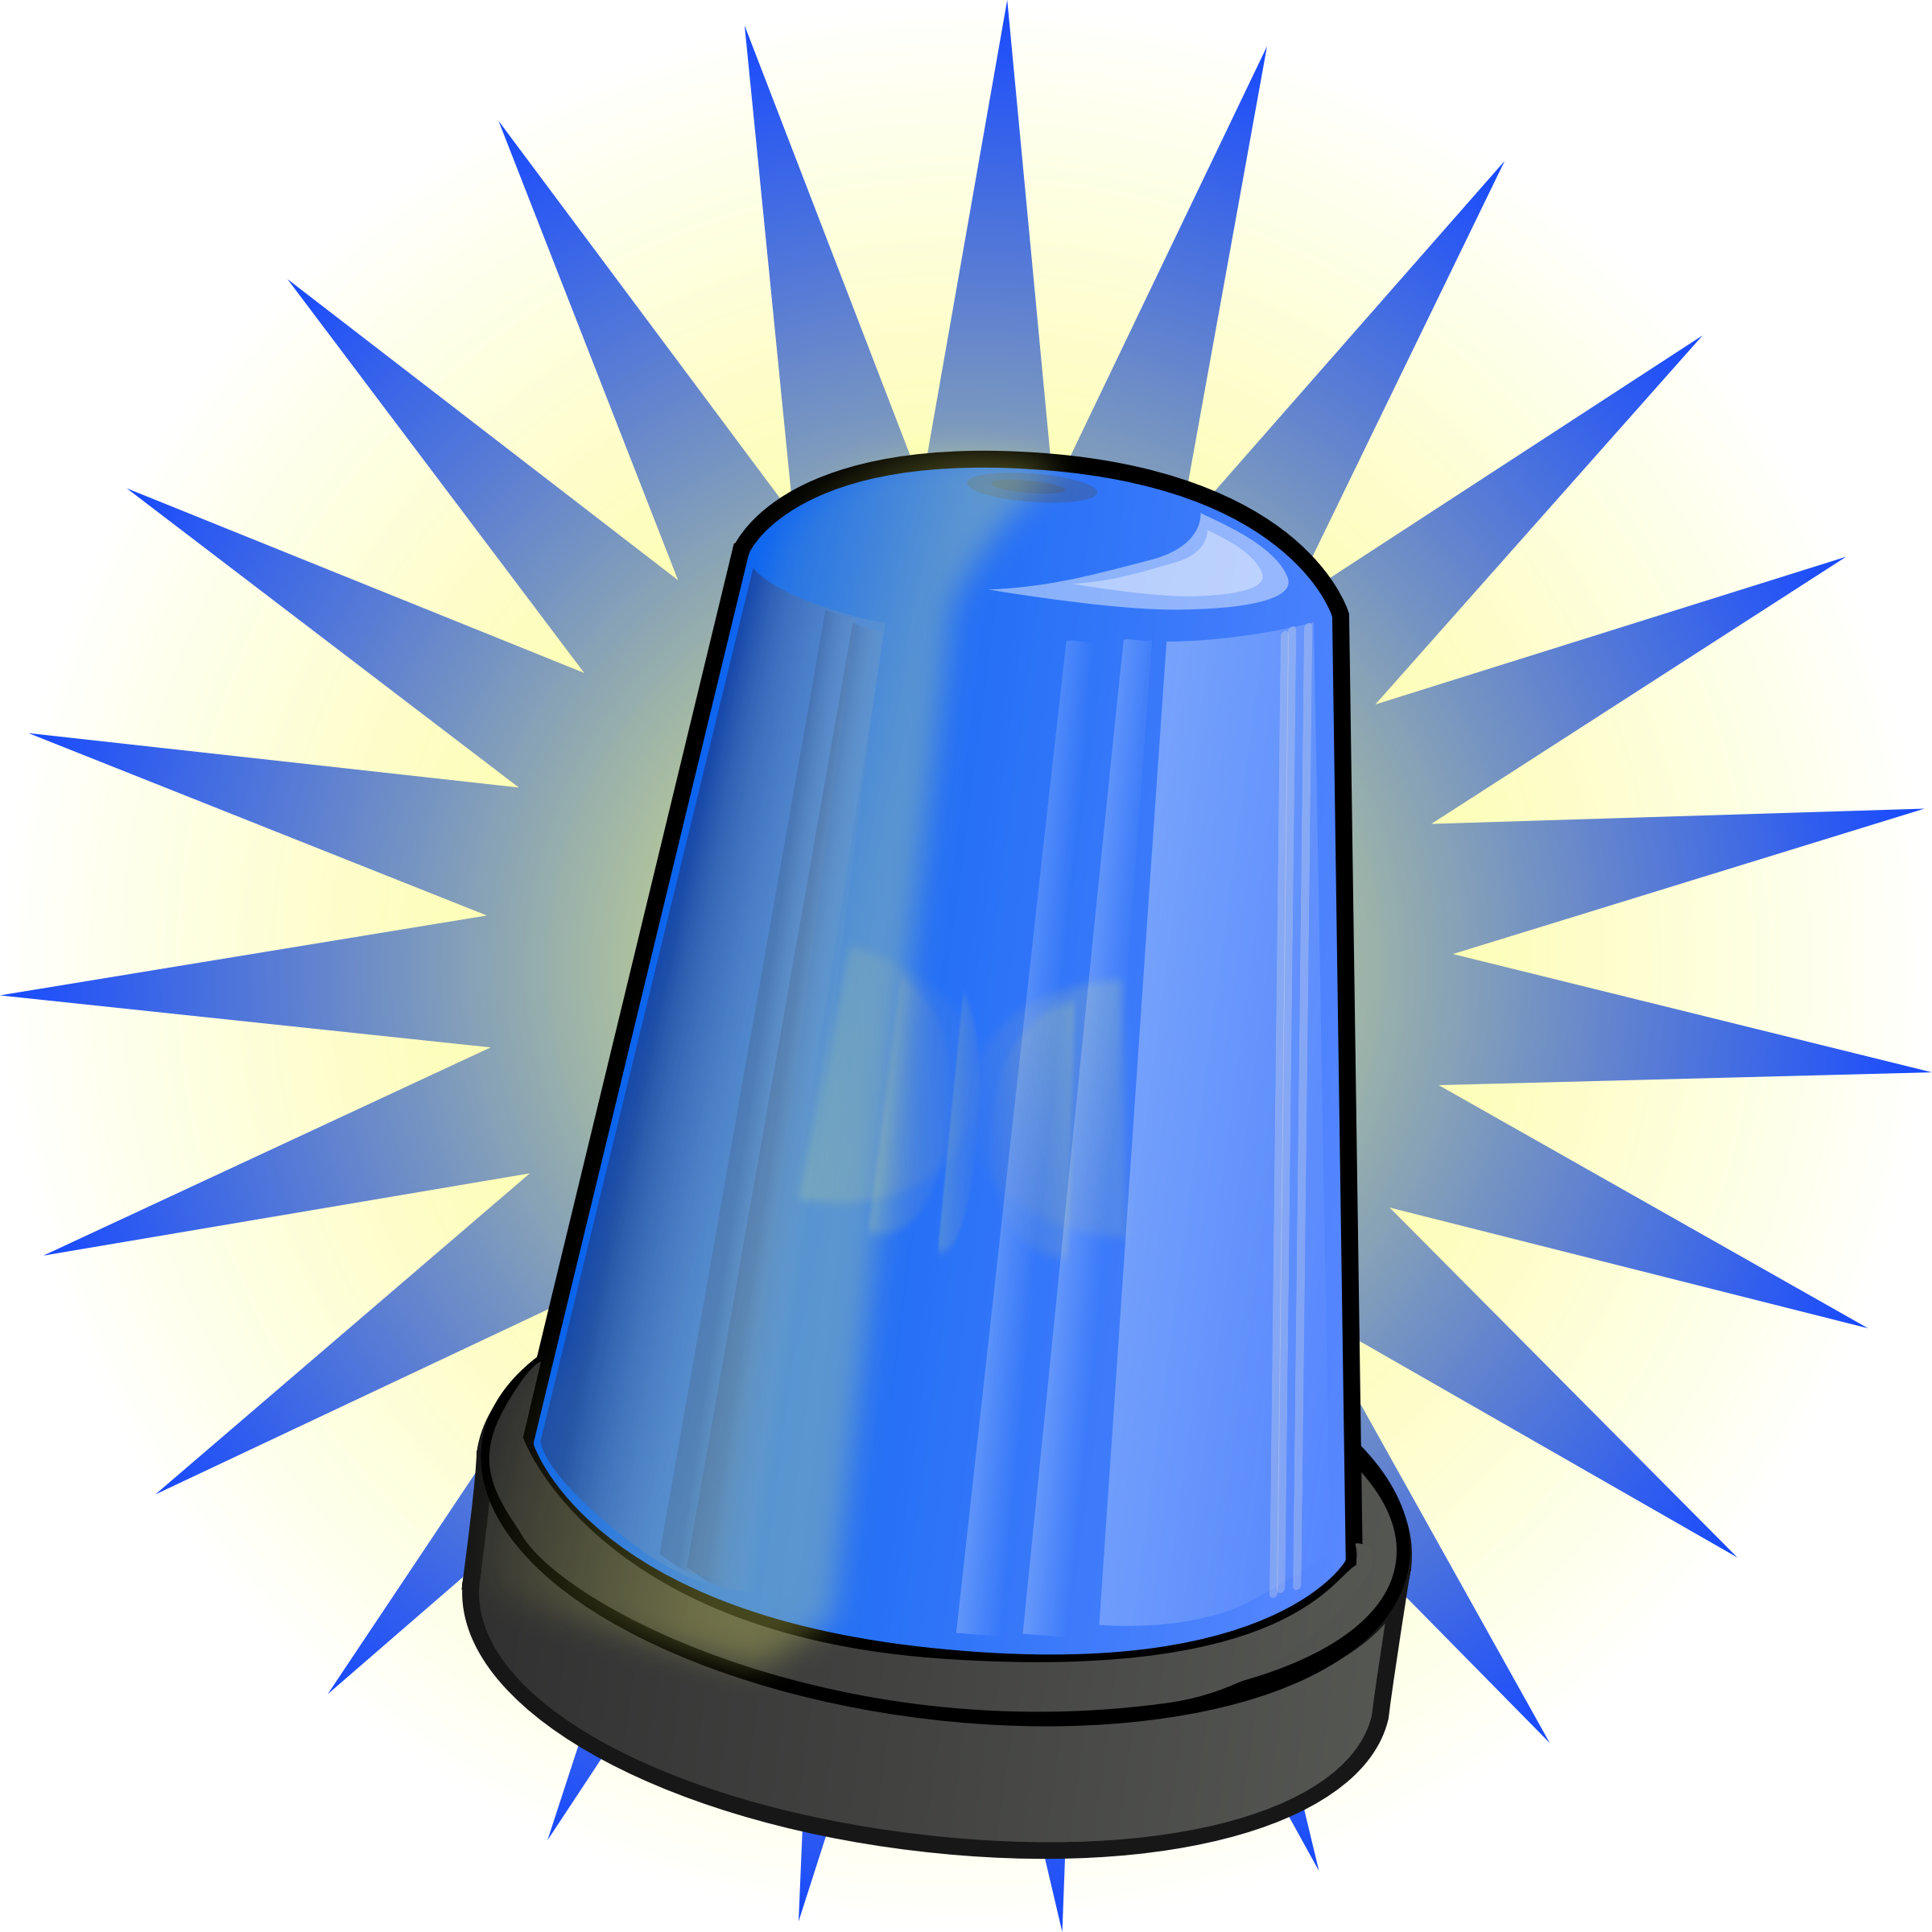 Blue signal light by qubodup